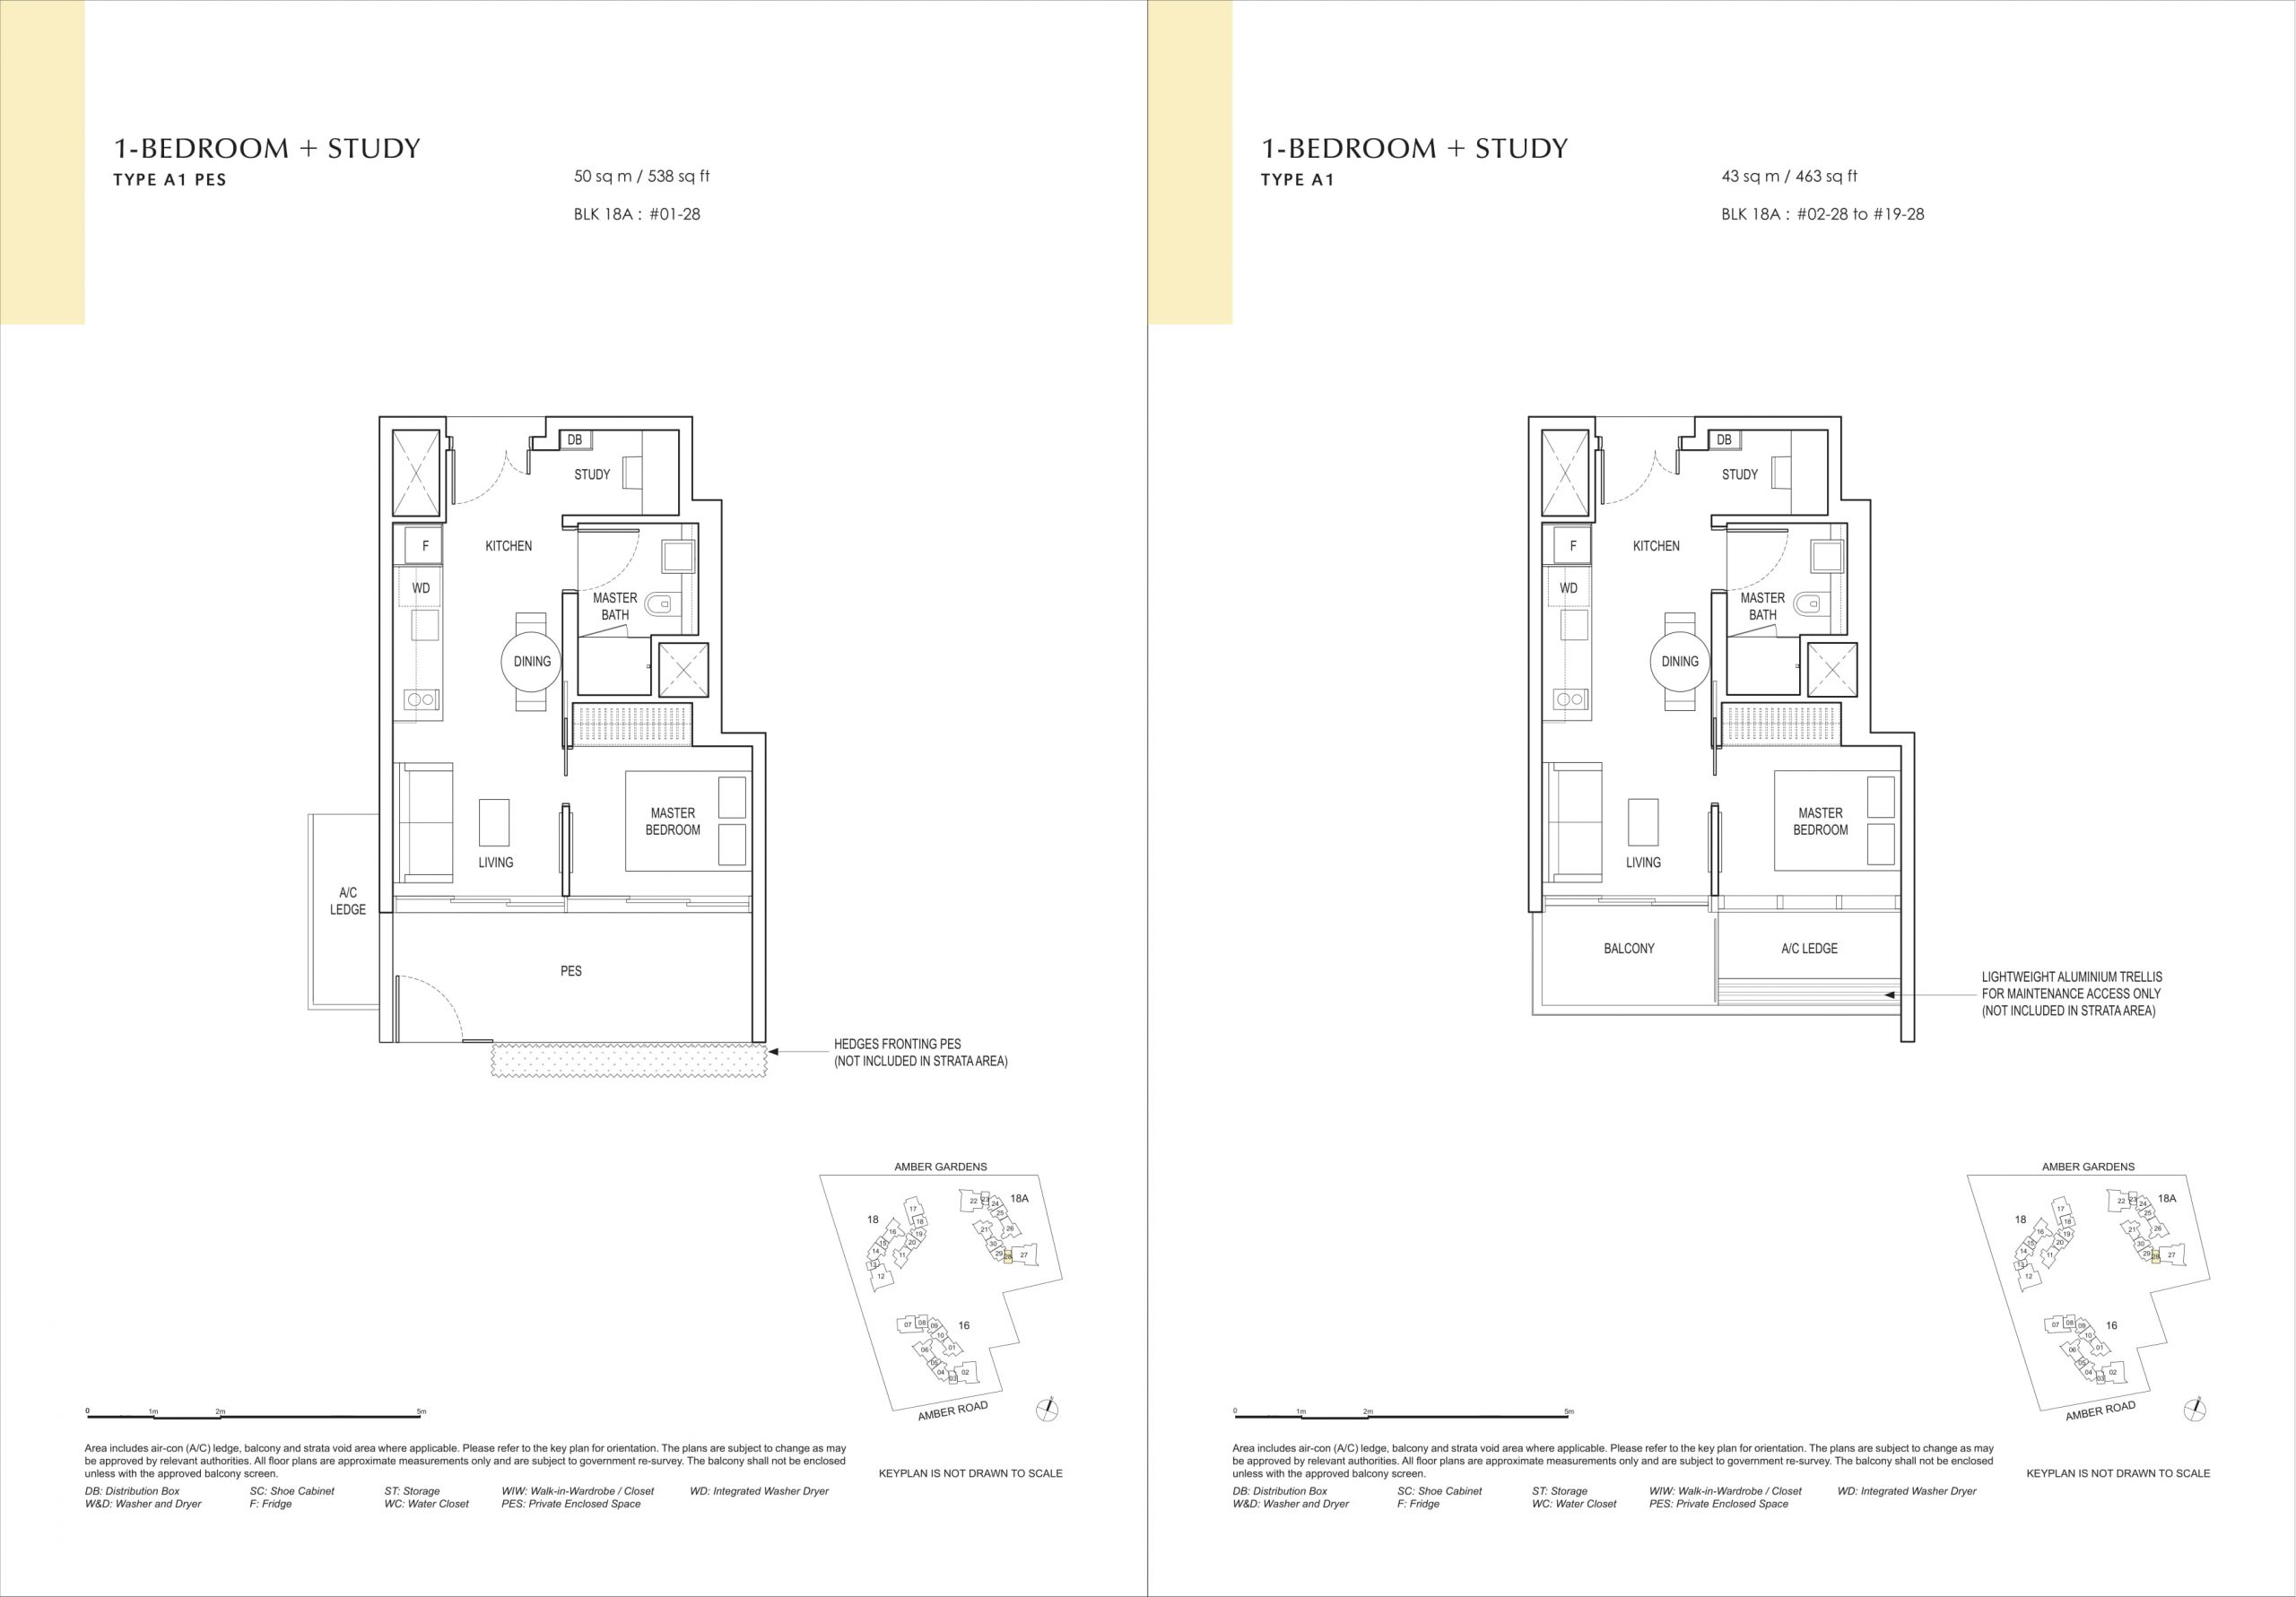 Amber Park's one-bedroom + (ensuite) study types